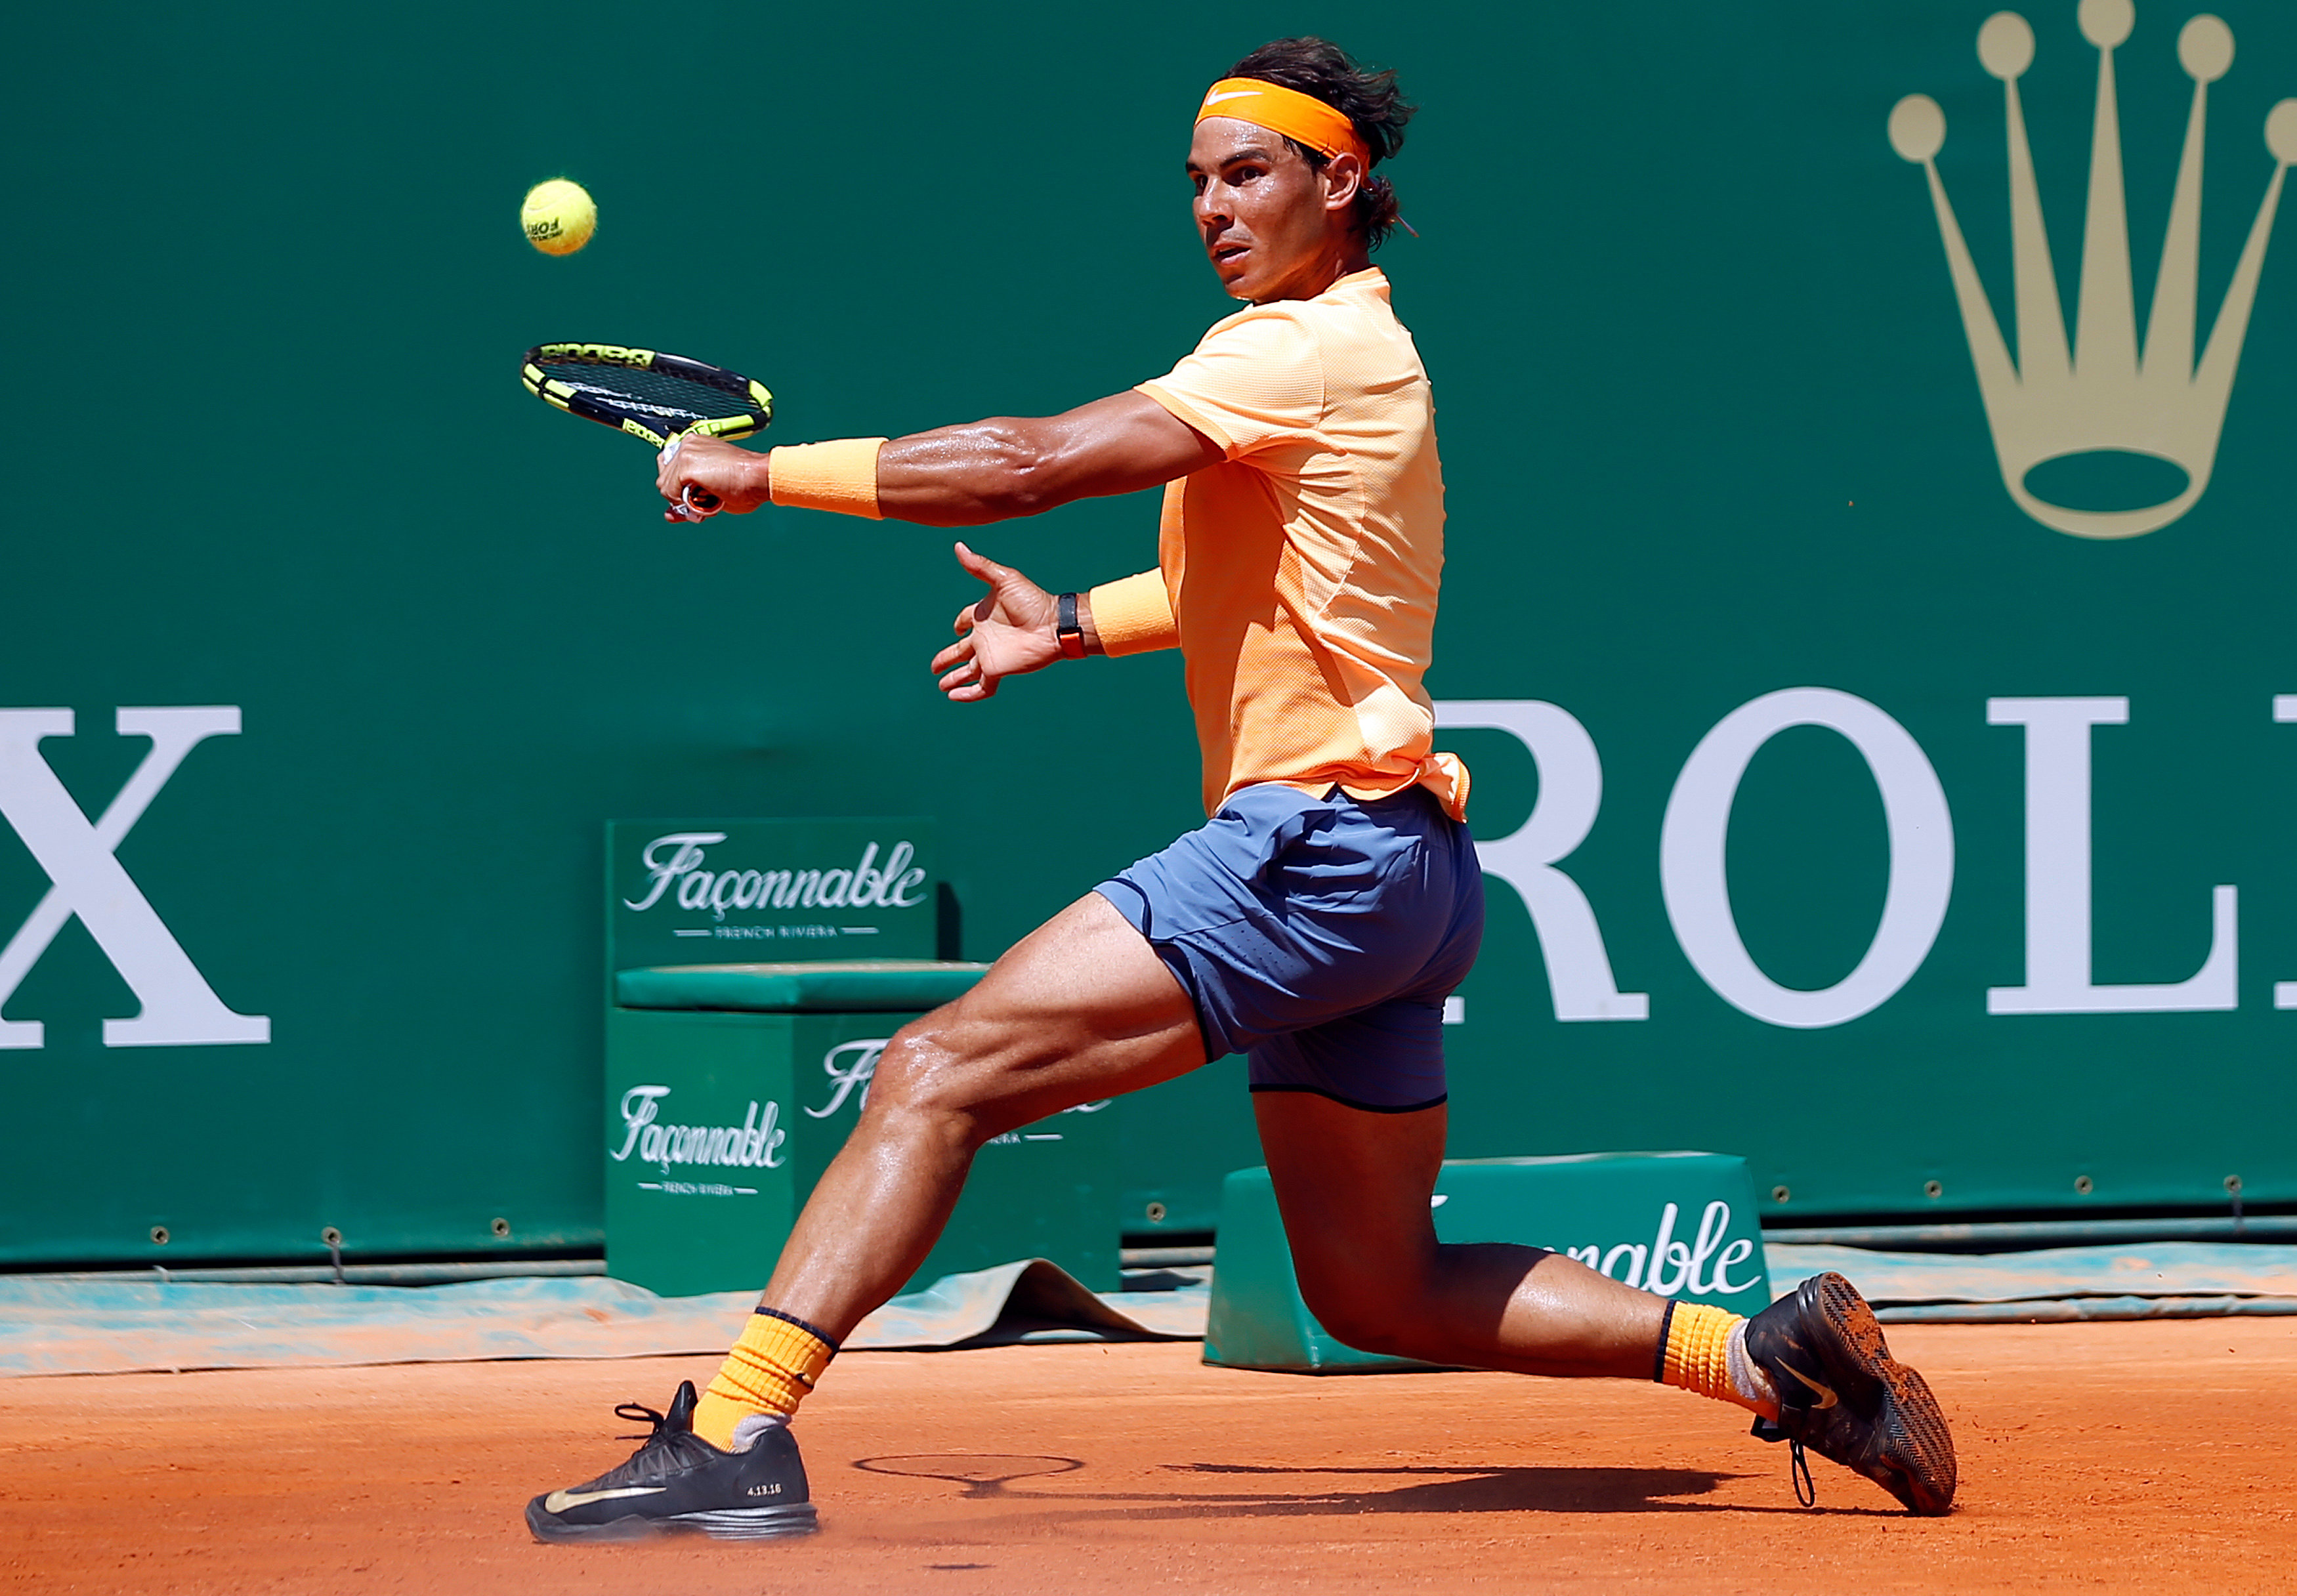 rafael-nadal-progresses-to-round-three-with-win-in-monte-carlo-masters-21